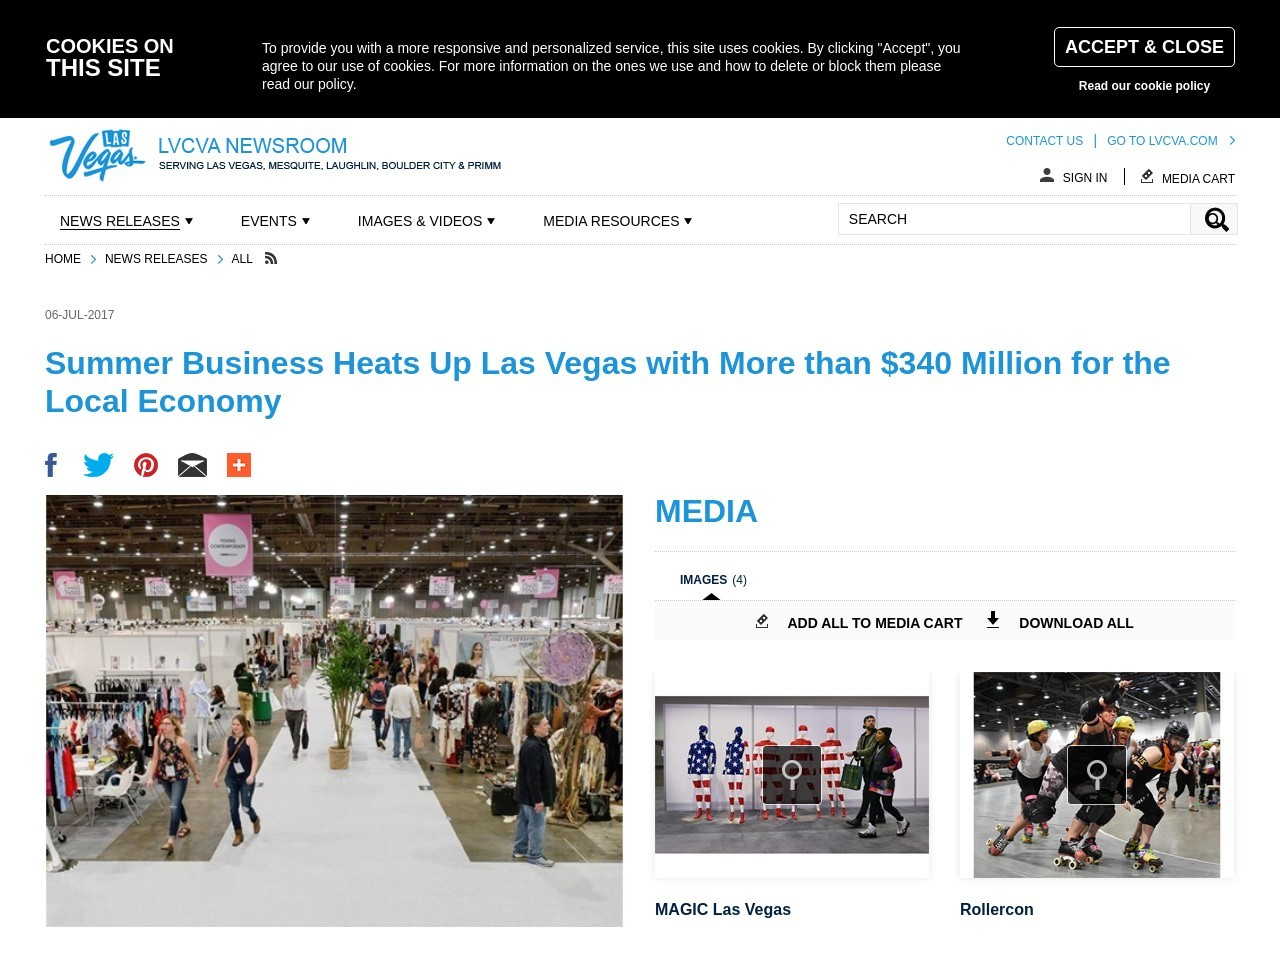 Summer Business Heats Up Las Vegas with More than $340 Million for the Local Economy